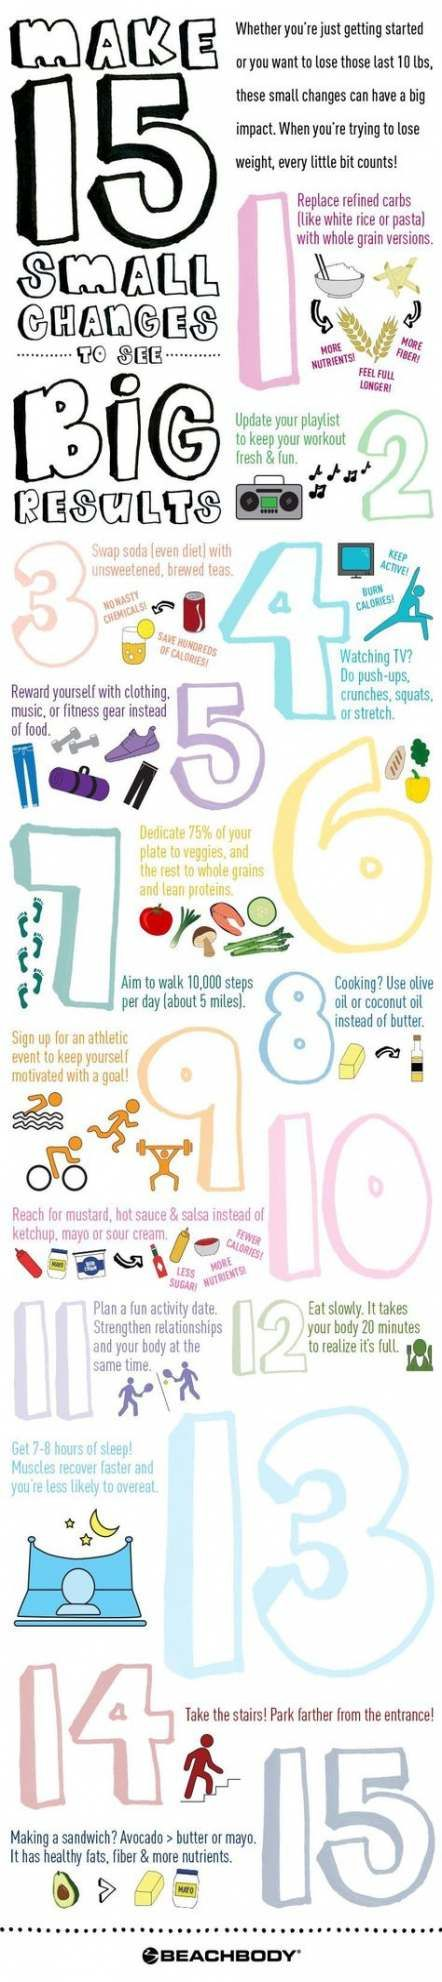 19+  ideas fitness nutrition losing weight healthy #fitness